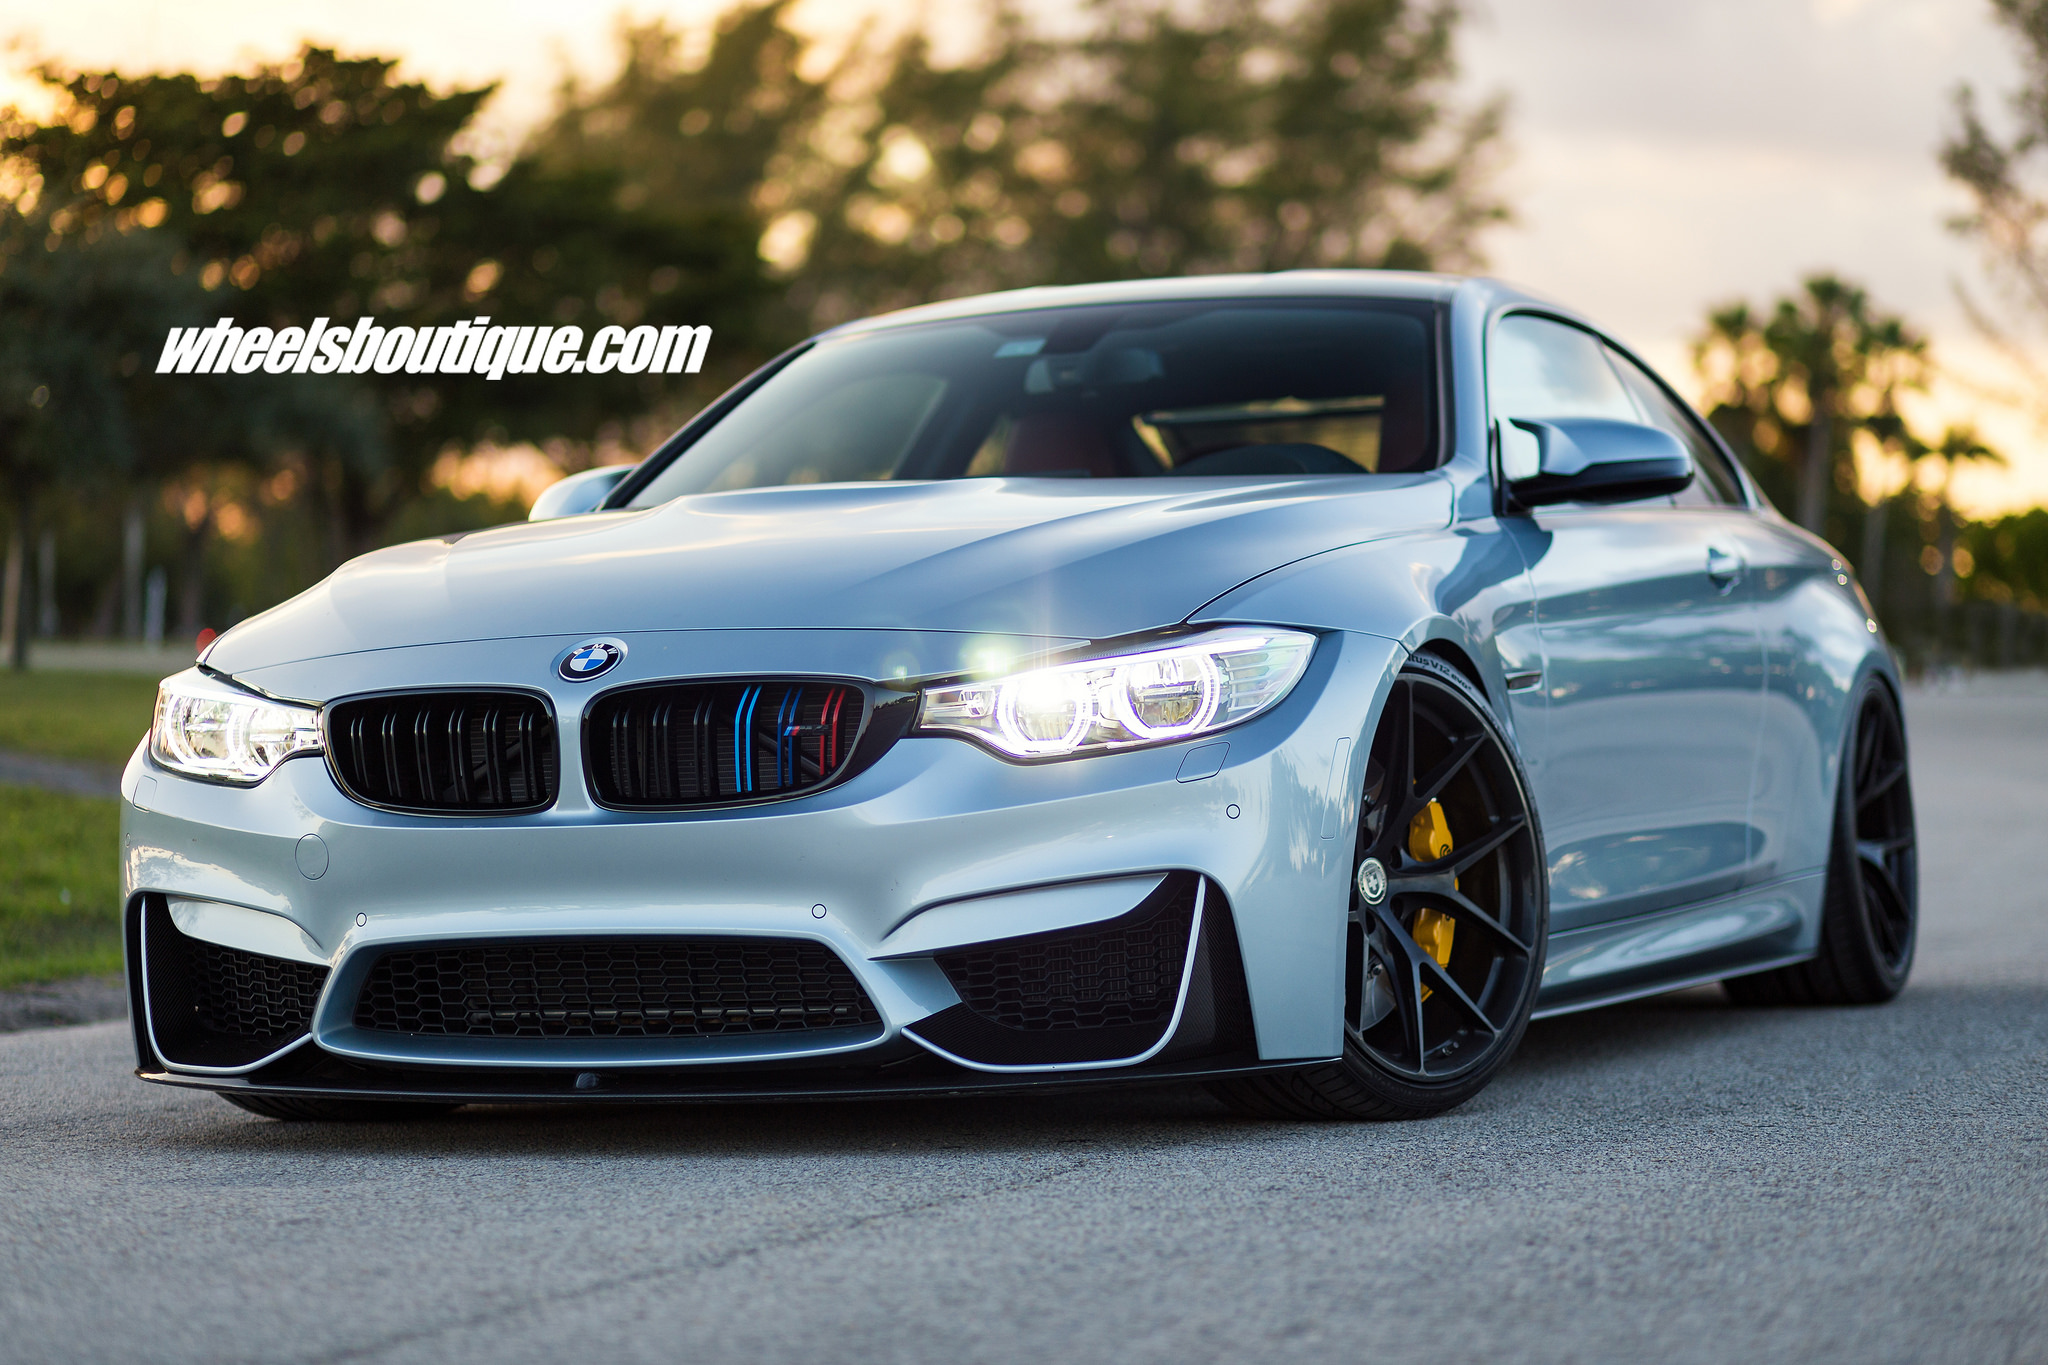 BMW M4 With HRE P101 Wheels By Wheels Boutique 2